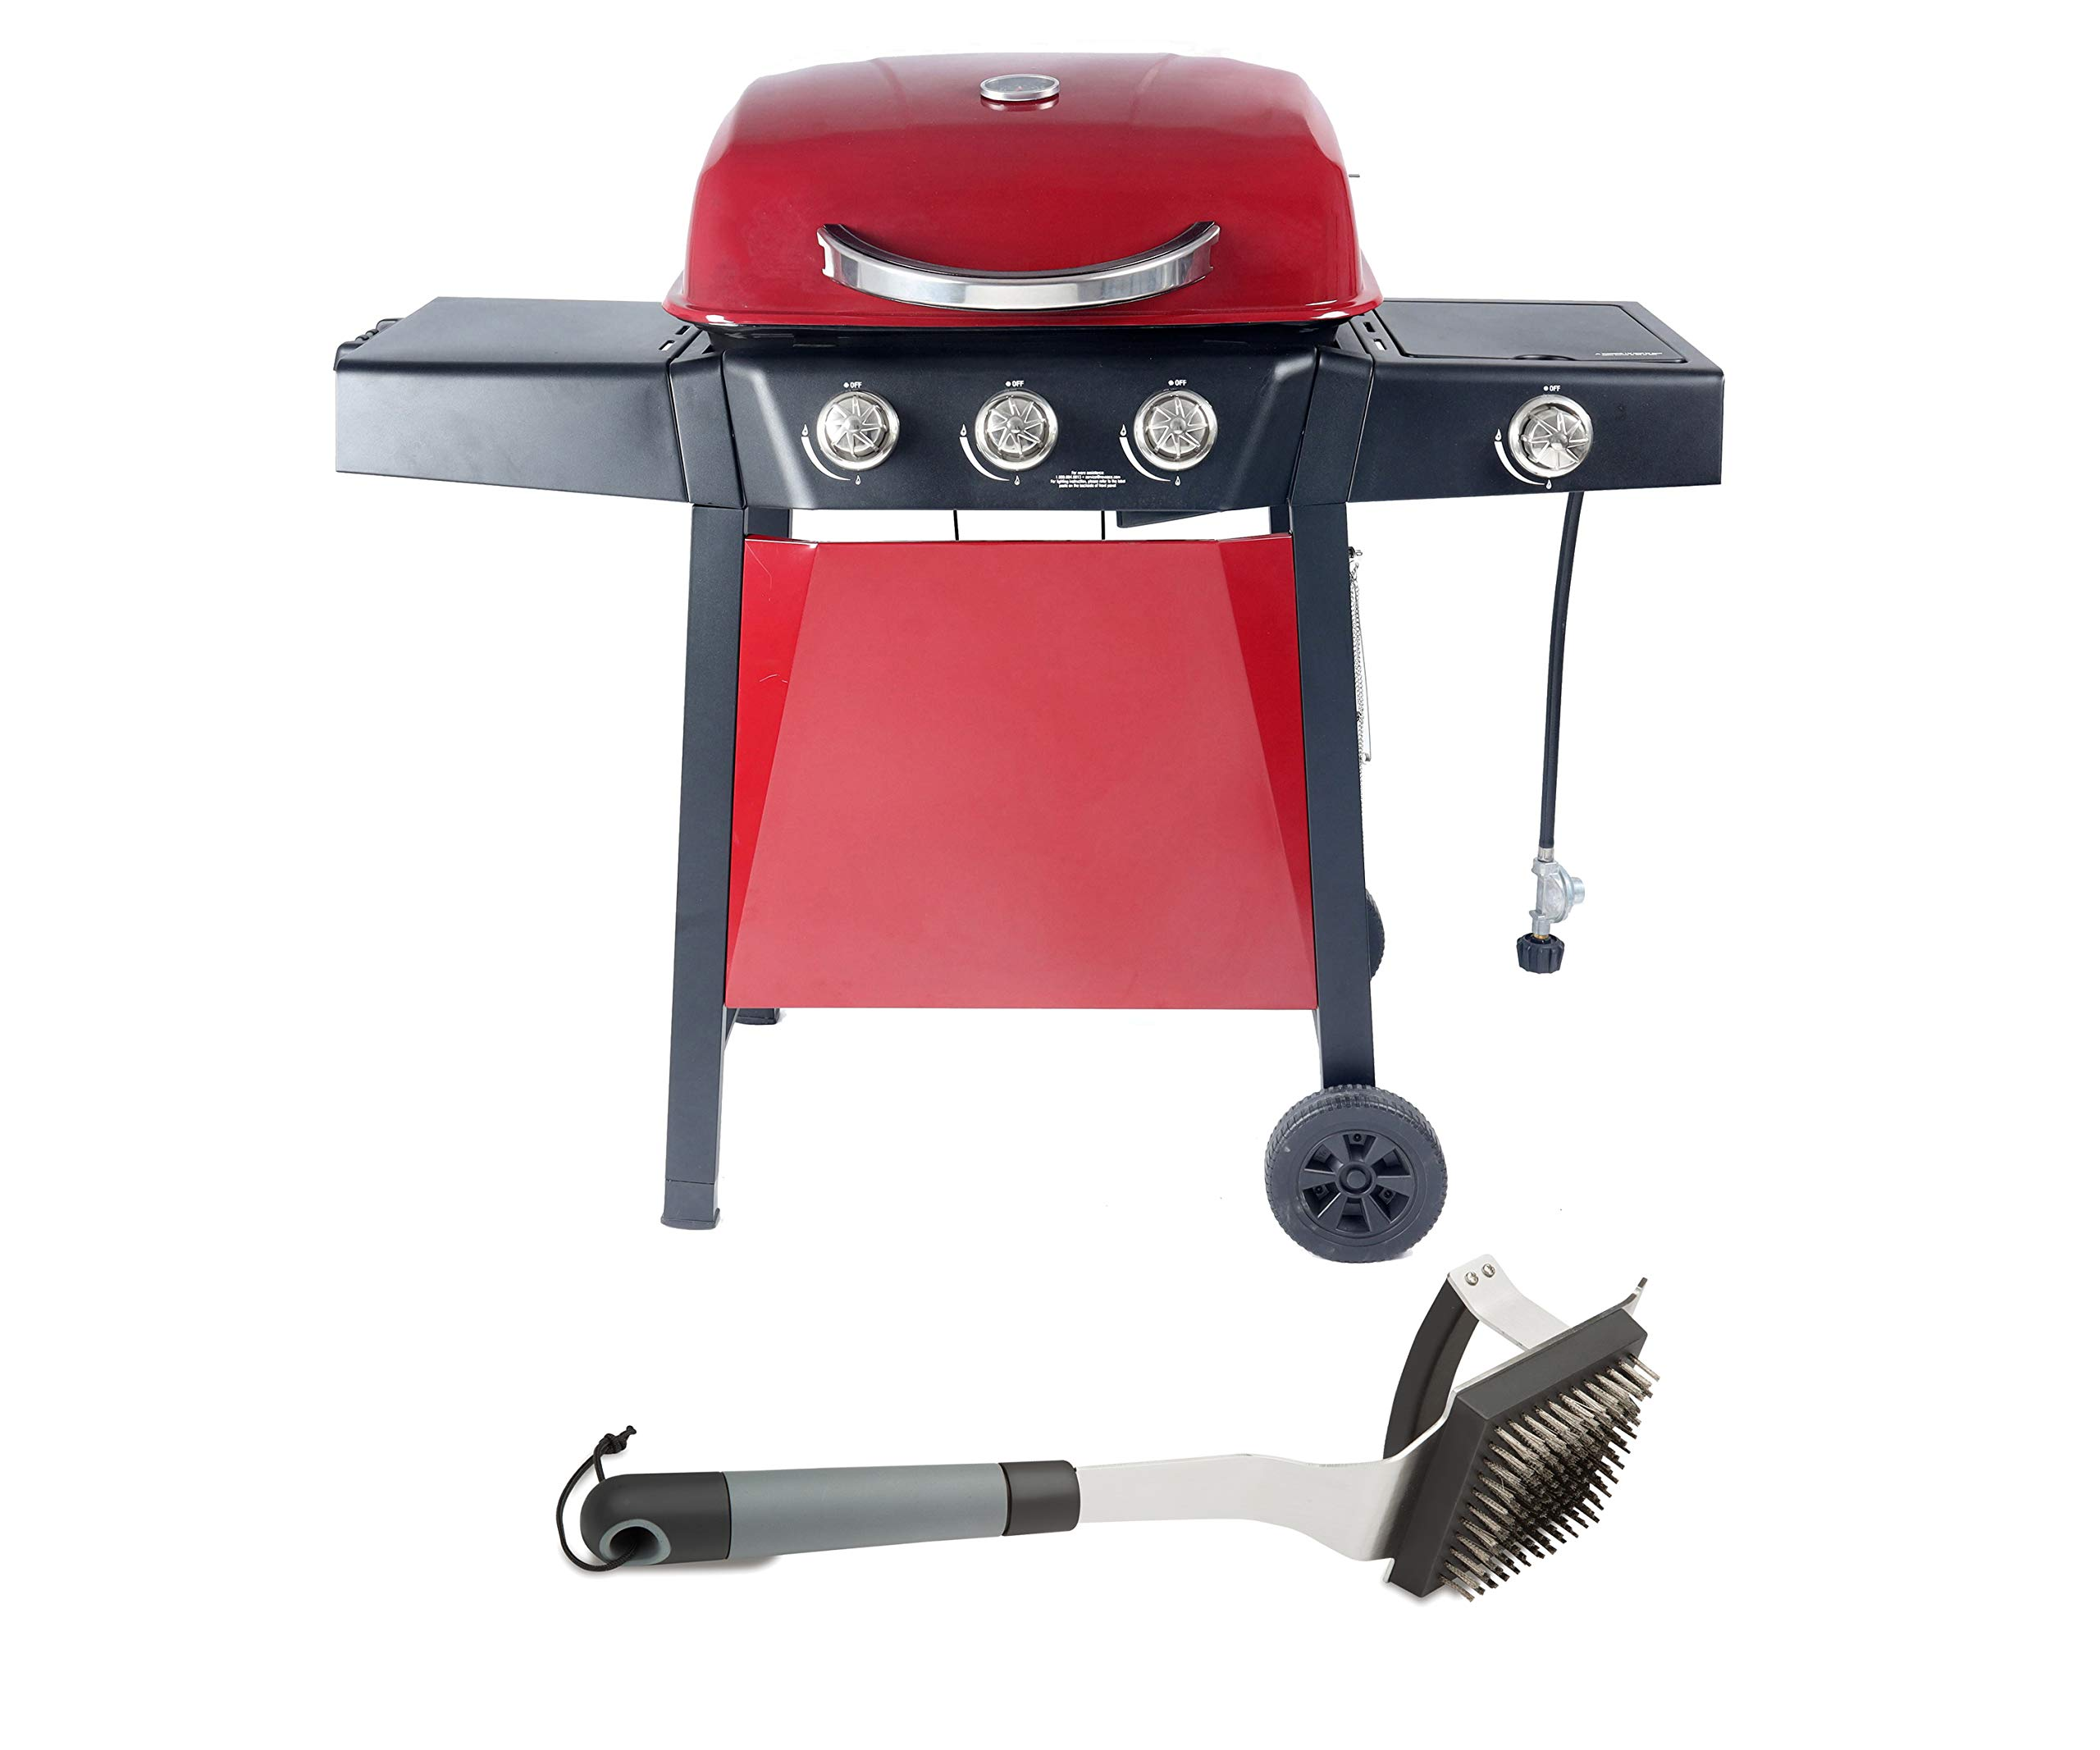 RevoAce 3-Burner Gas Grill with Side Burner, Red Bundle with Cuisinart Dual Grip Barbecue Grill Brush and Scraper by RevoAce + Cuisinart